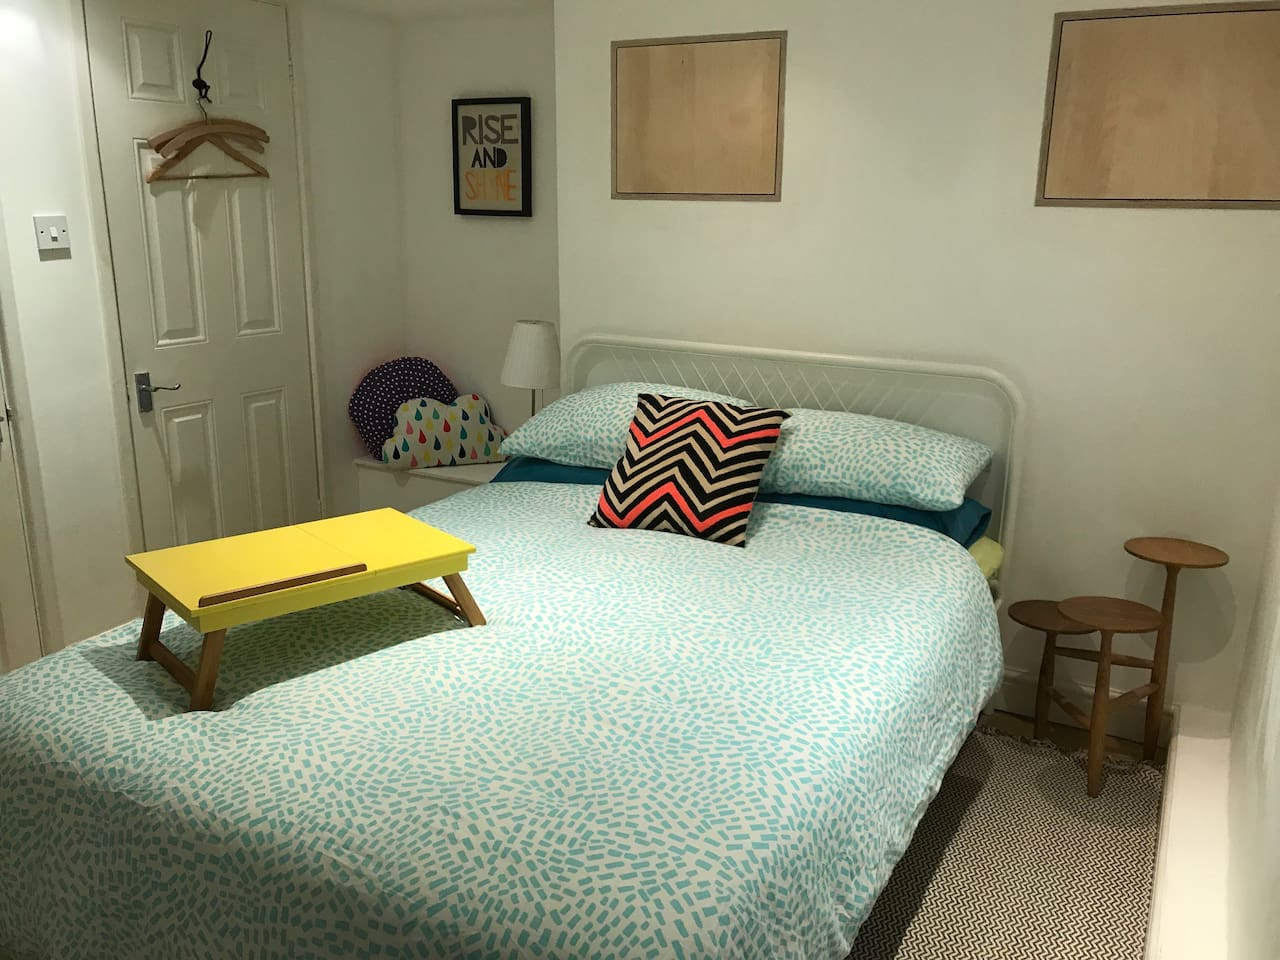 Private ensuite room with comfortable double bed suitable for 1 or 2 people, plus hotel style pillows for extra luxury, ready for a good night's sleep. Towels, toiletries and linen are all included plus breakfast, parking and wi-fi !!